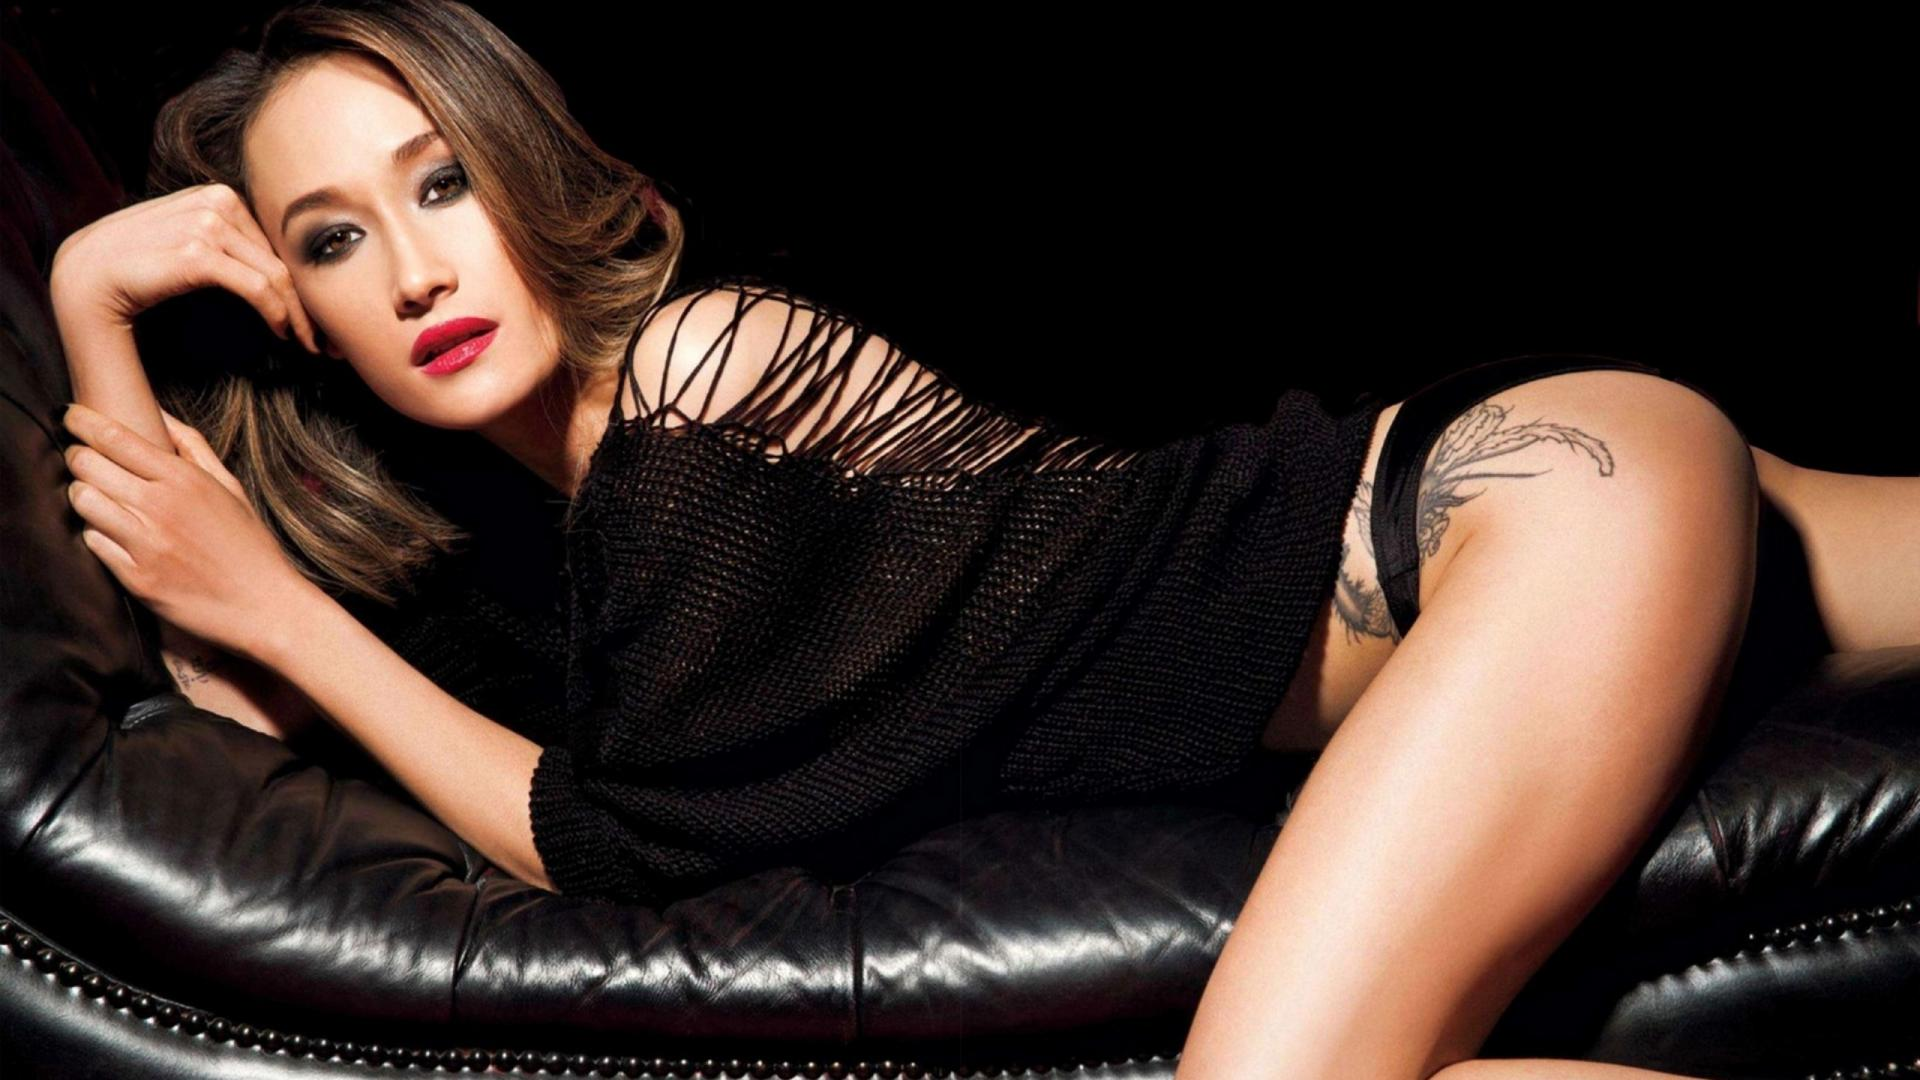 download photo 1920x1080 maggie q asian girl sexy